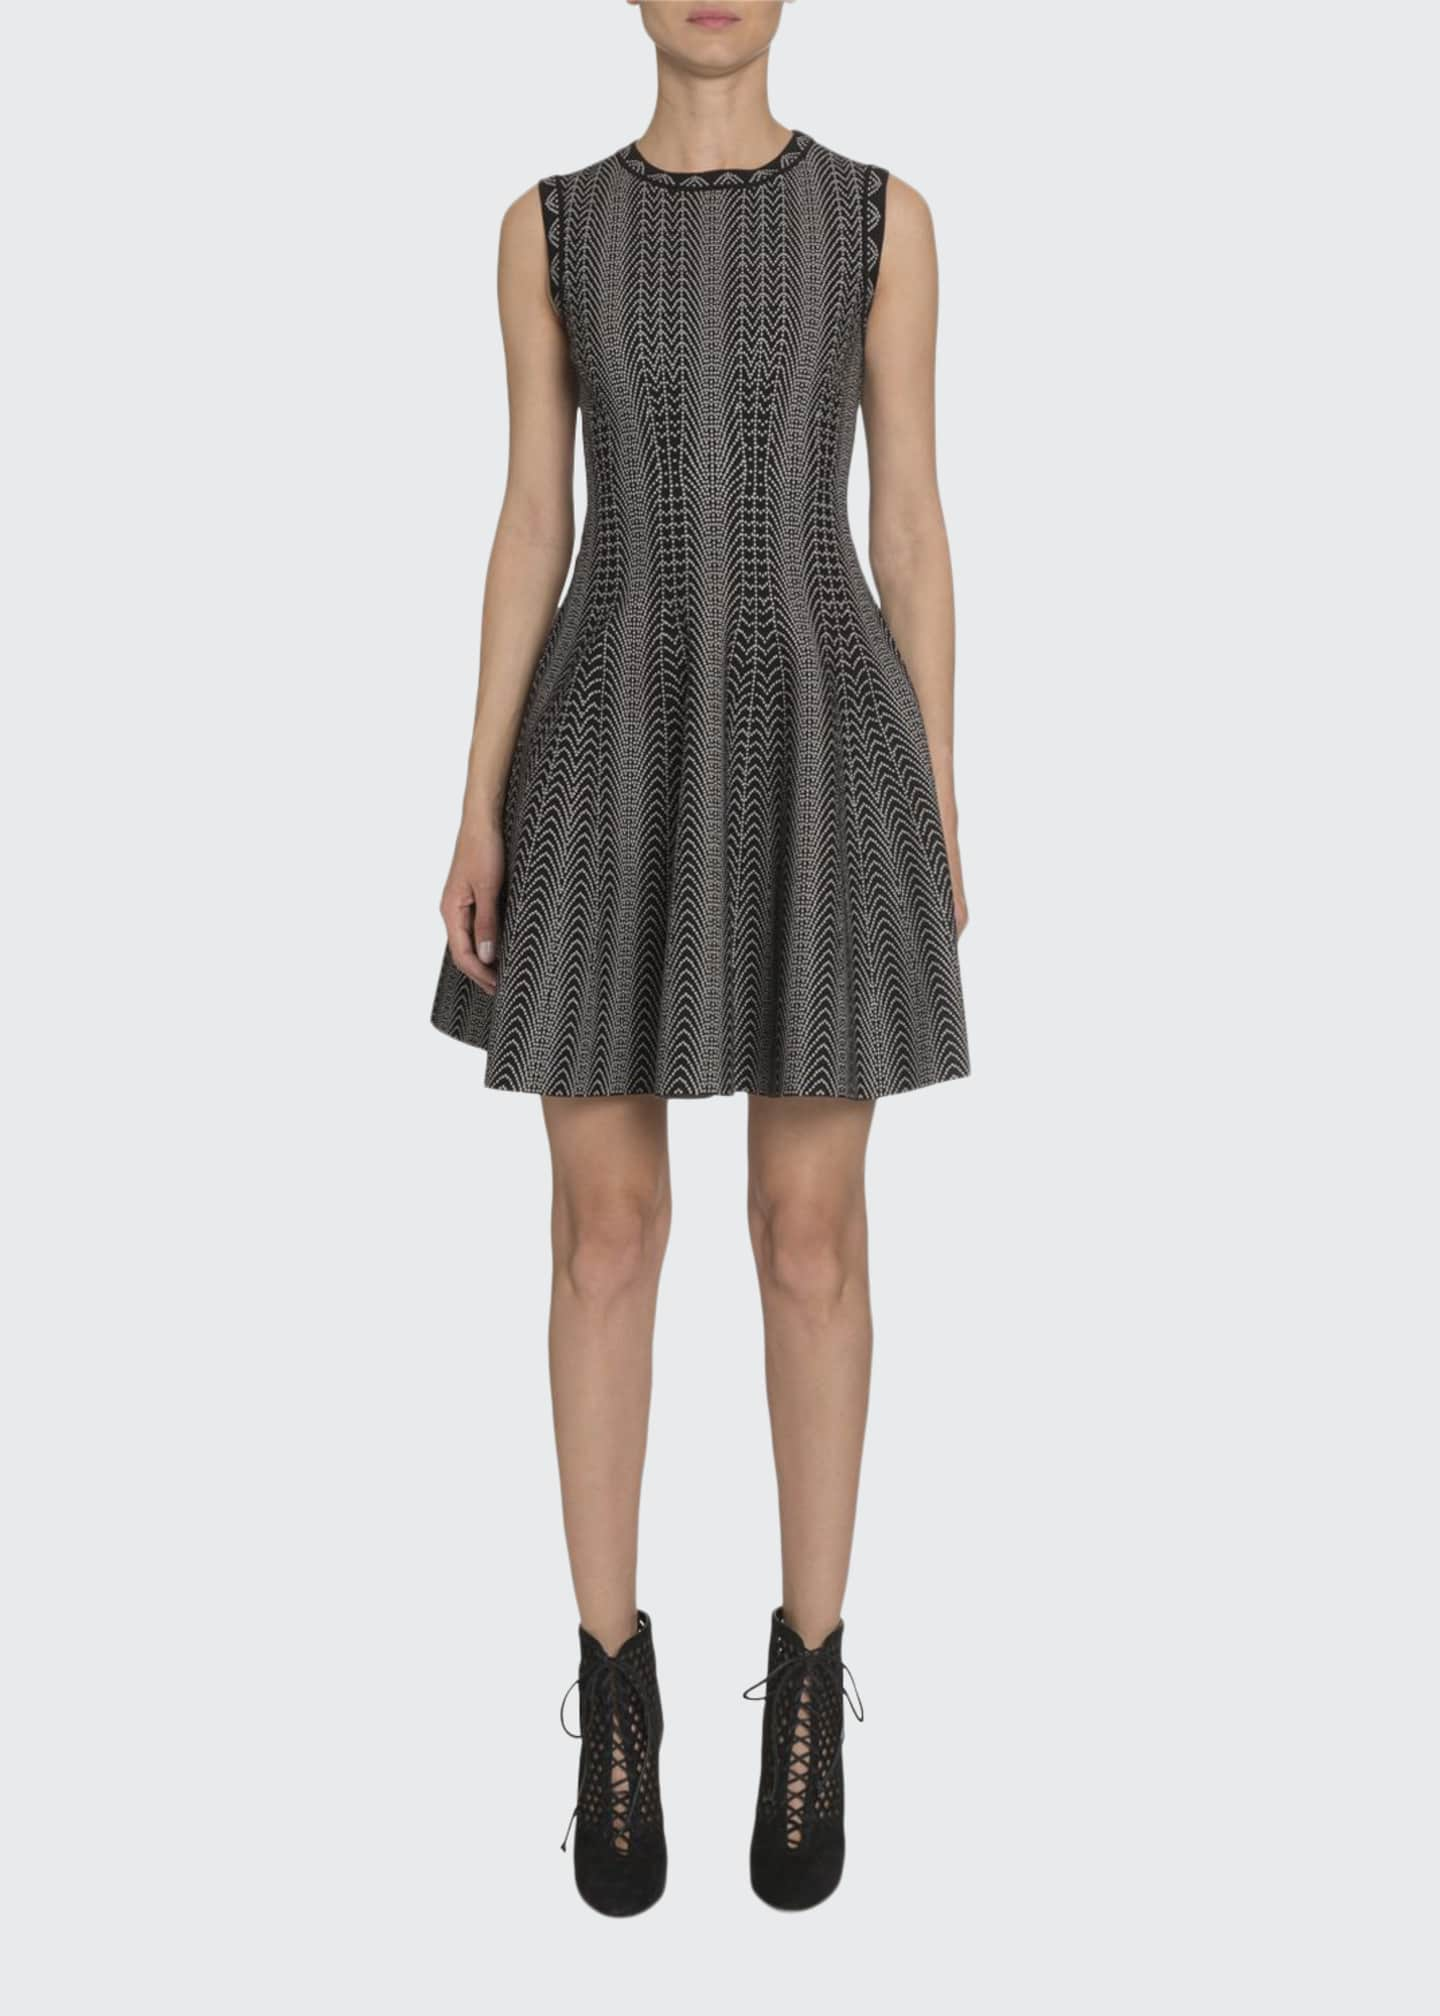 ALAIA Dot-Print Fit-&-Flare Dress